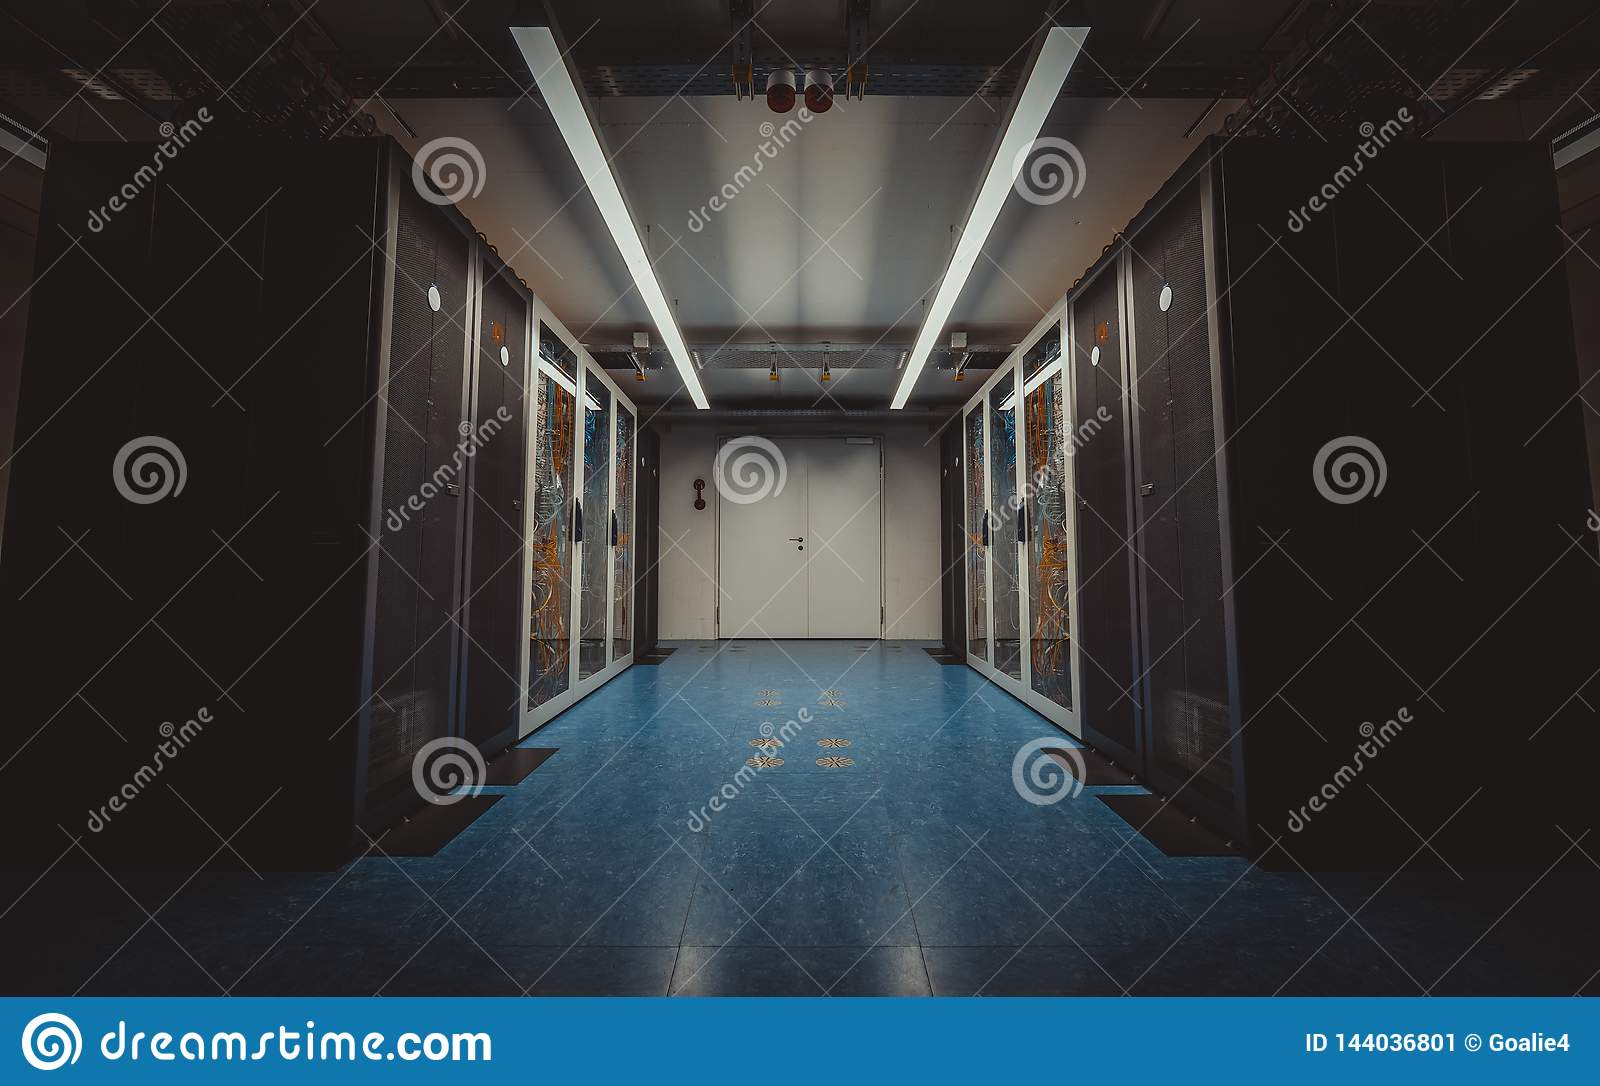 Wide angle view of a modern server room